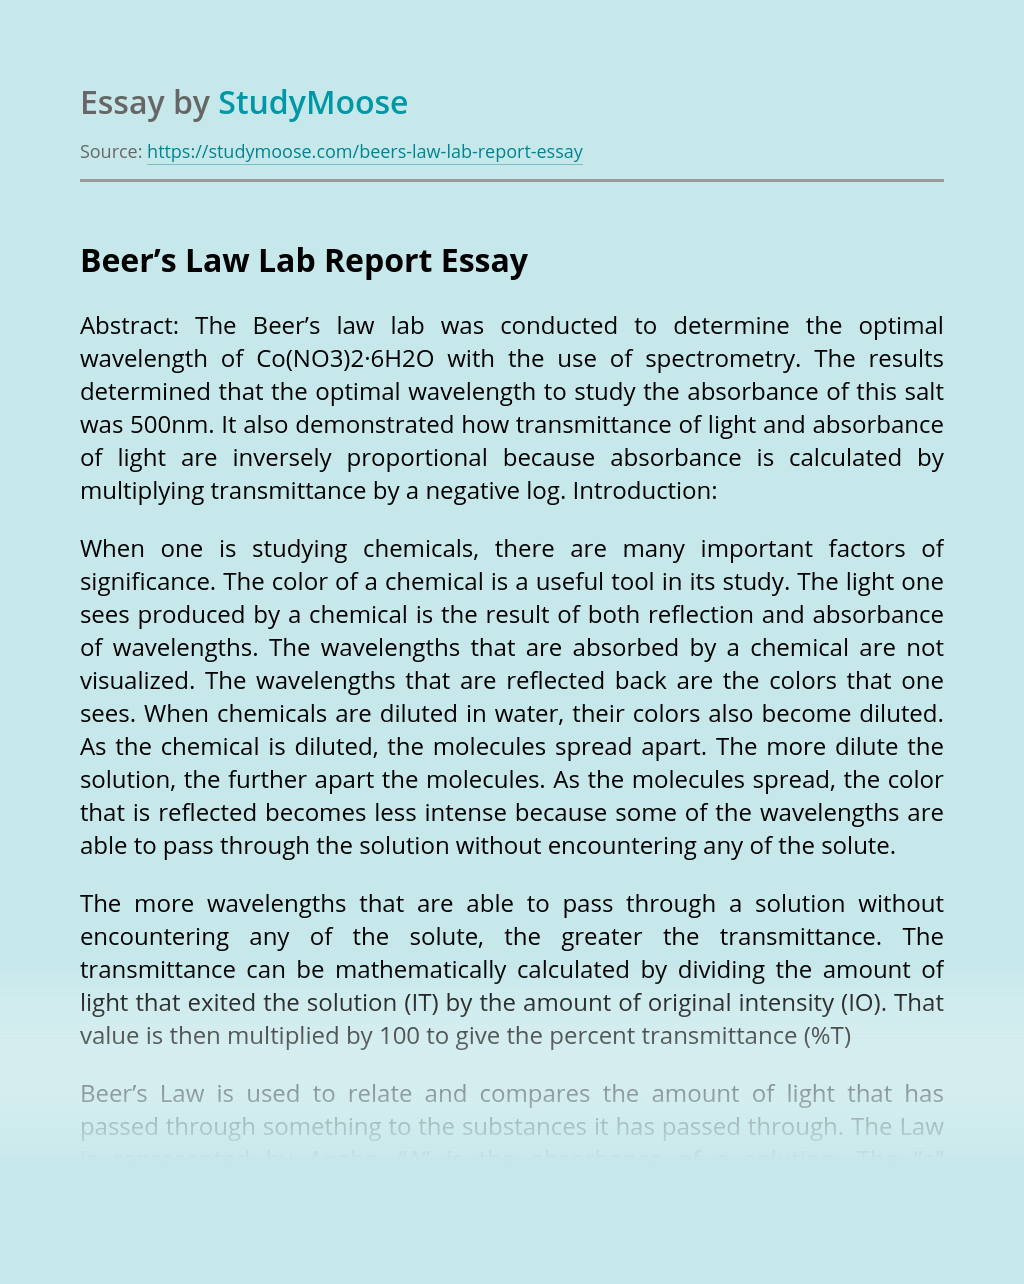 Beer's Law Lab Report